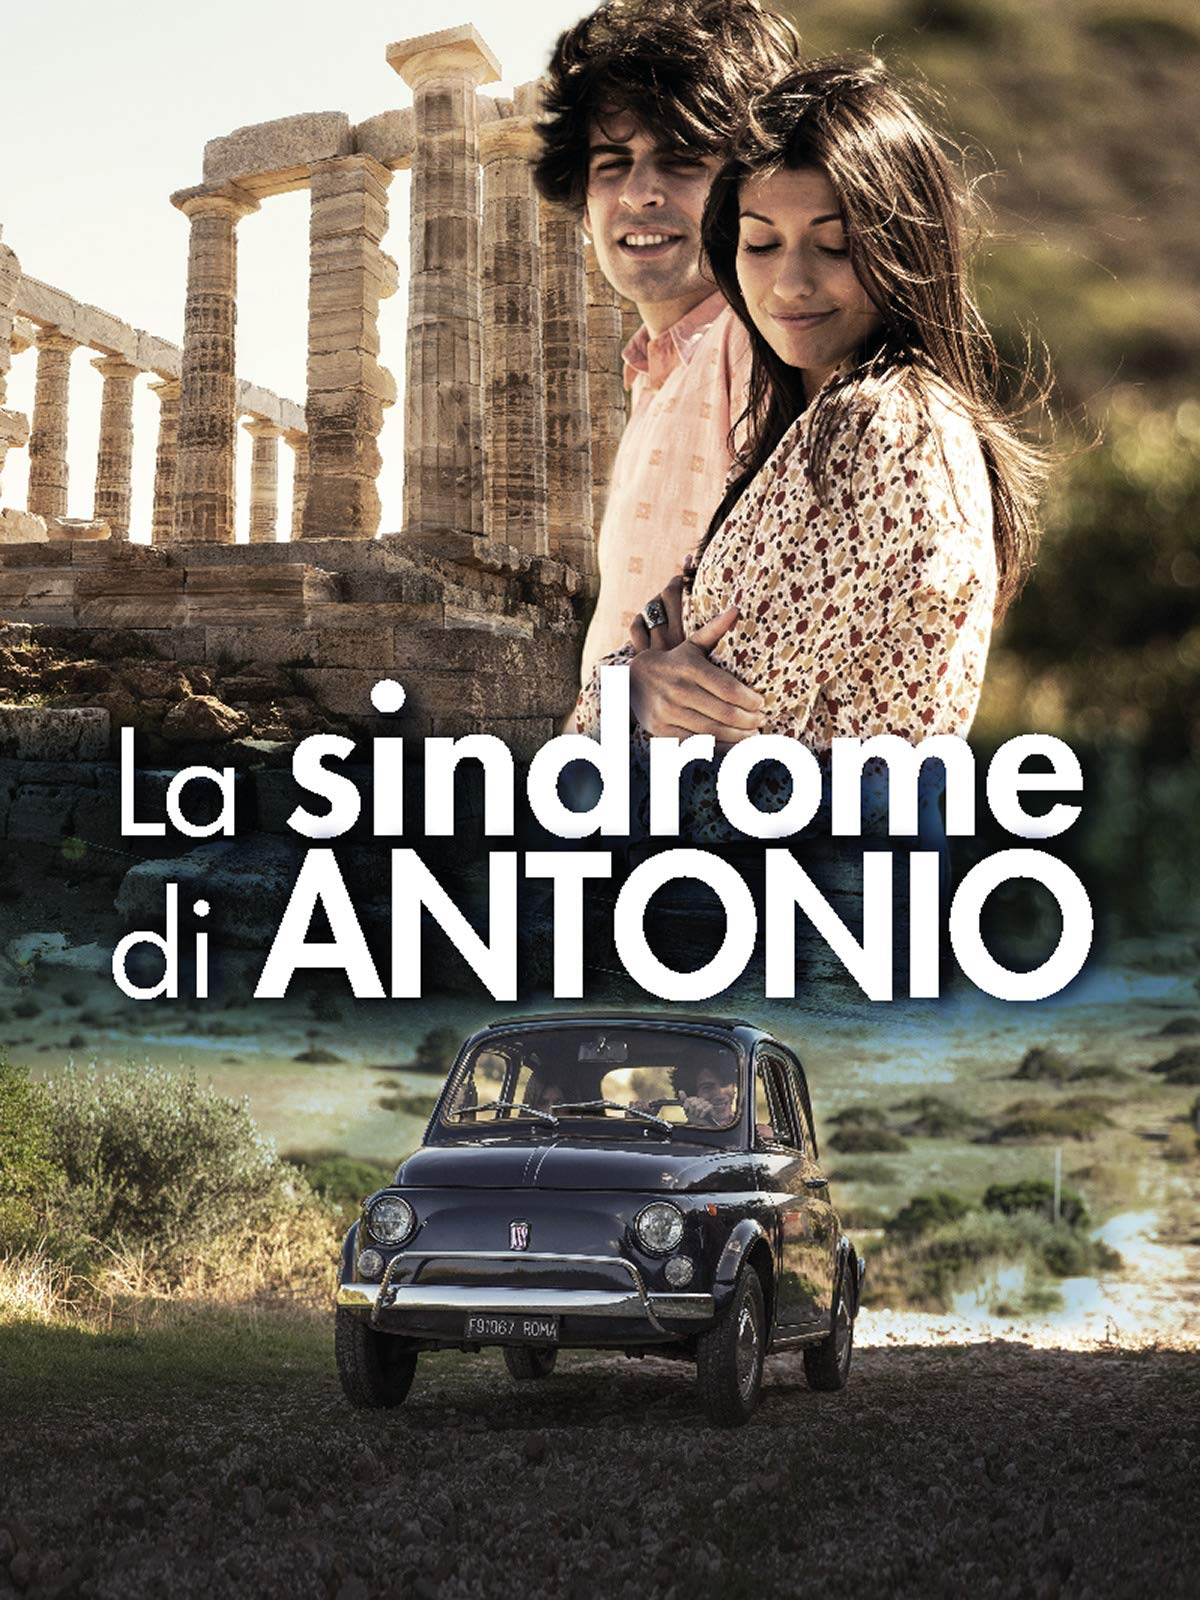 Antonio's Syndrome (La Sindrome di Antonio)